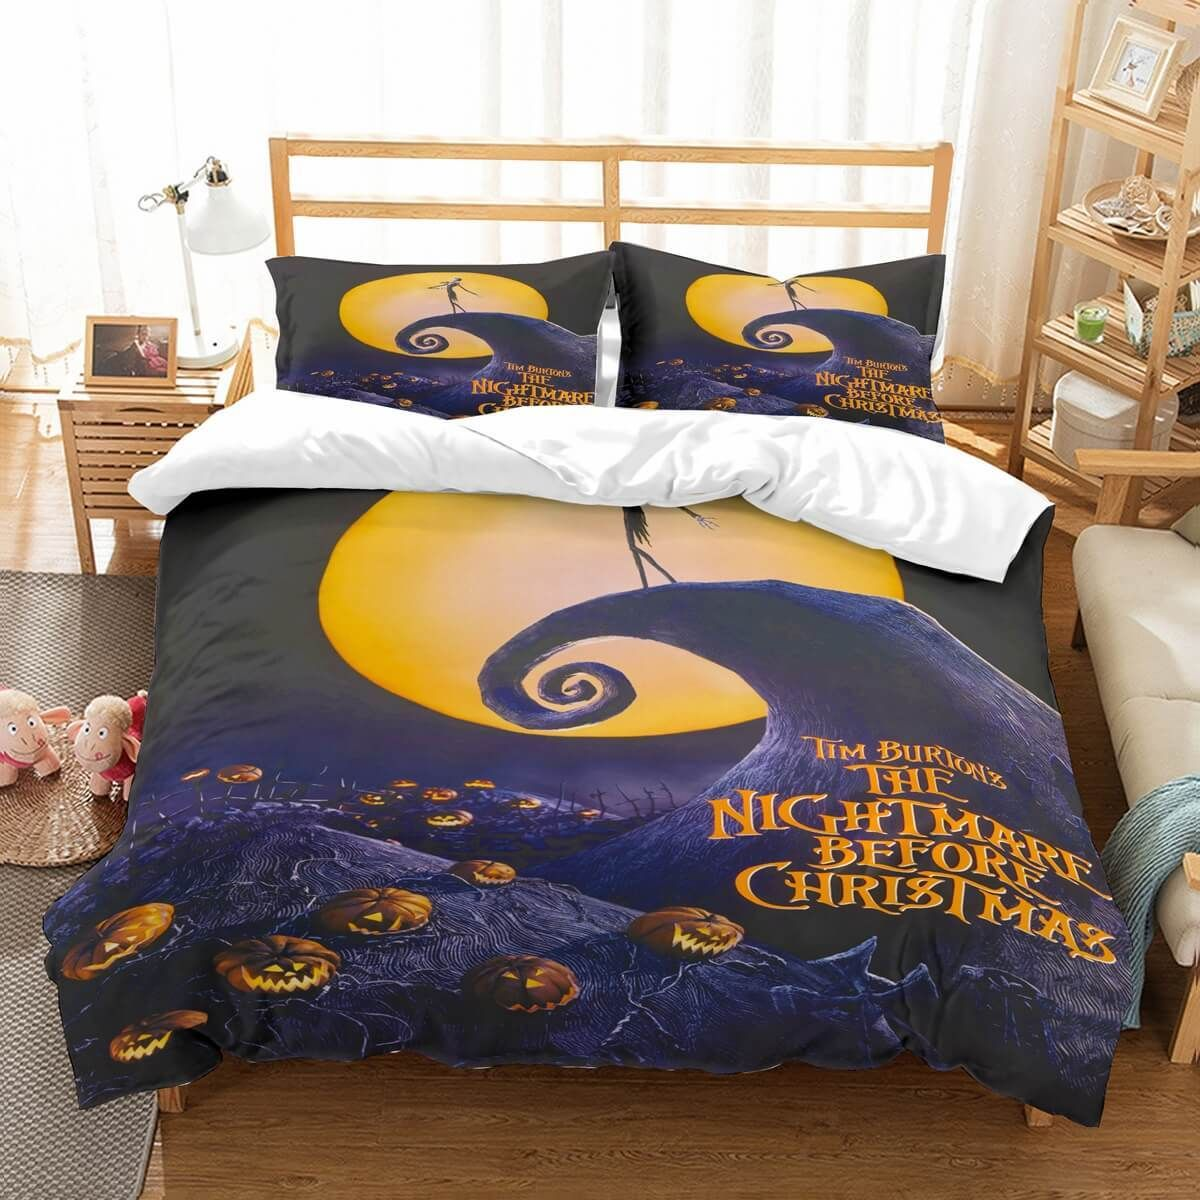 3D Customize The Nightmare Before Christmas Bedding Set ...